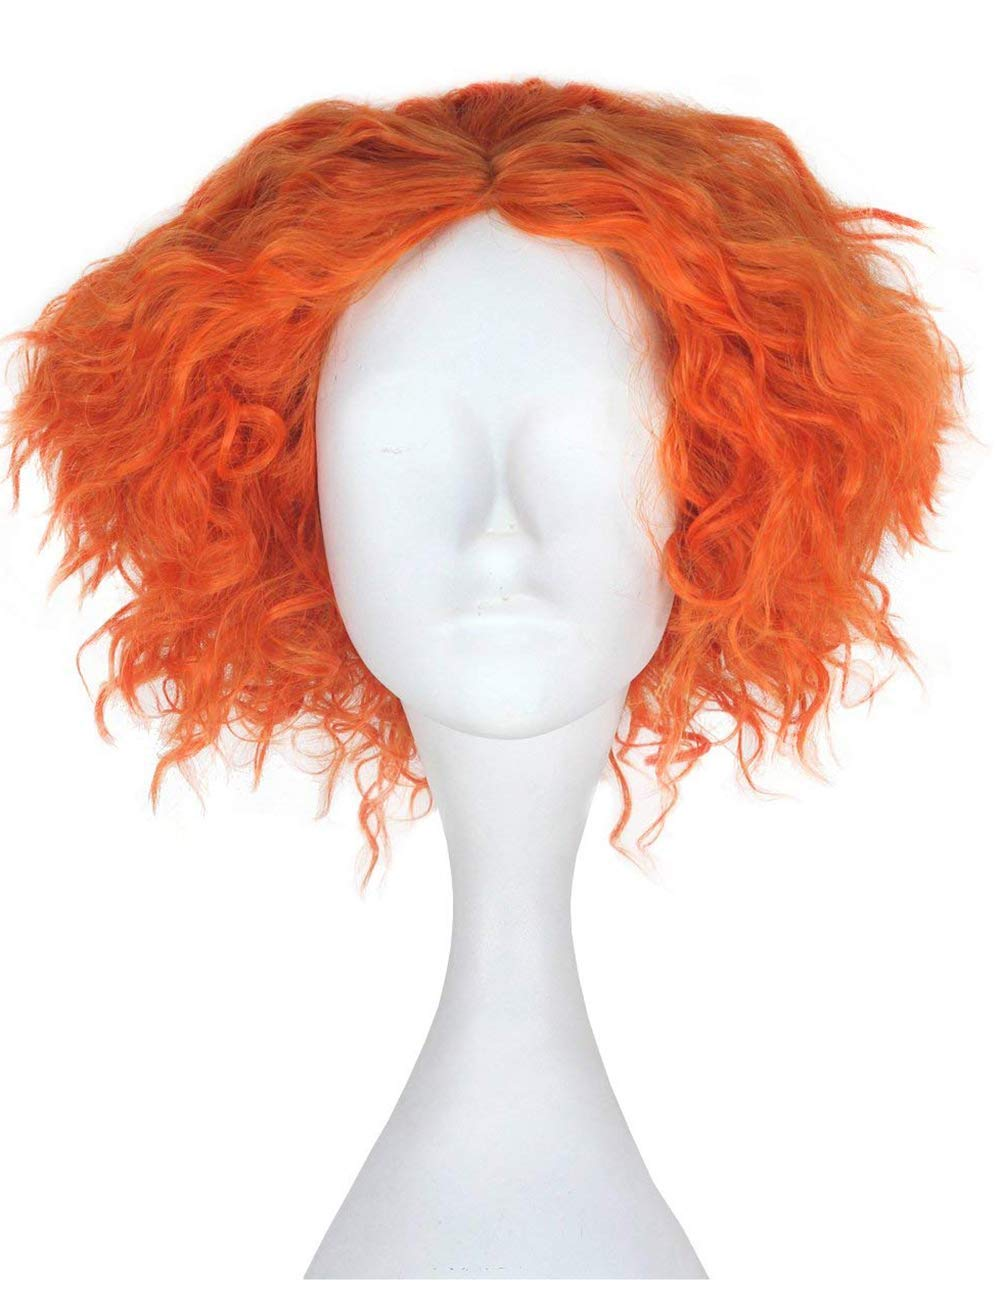 safety Short Curly Orange Wig All items in the store and W Fluffy Layered